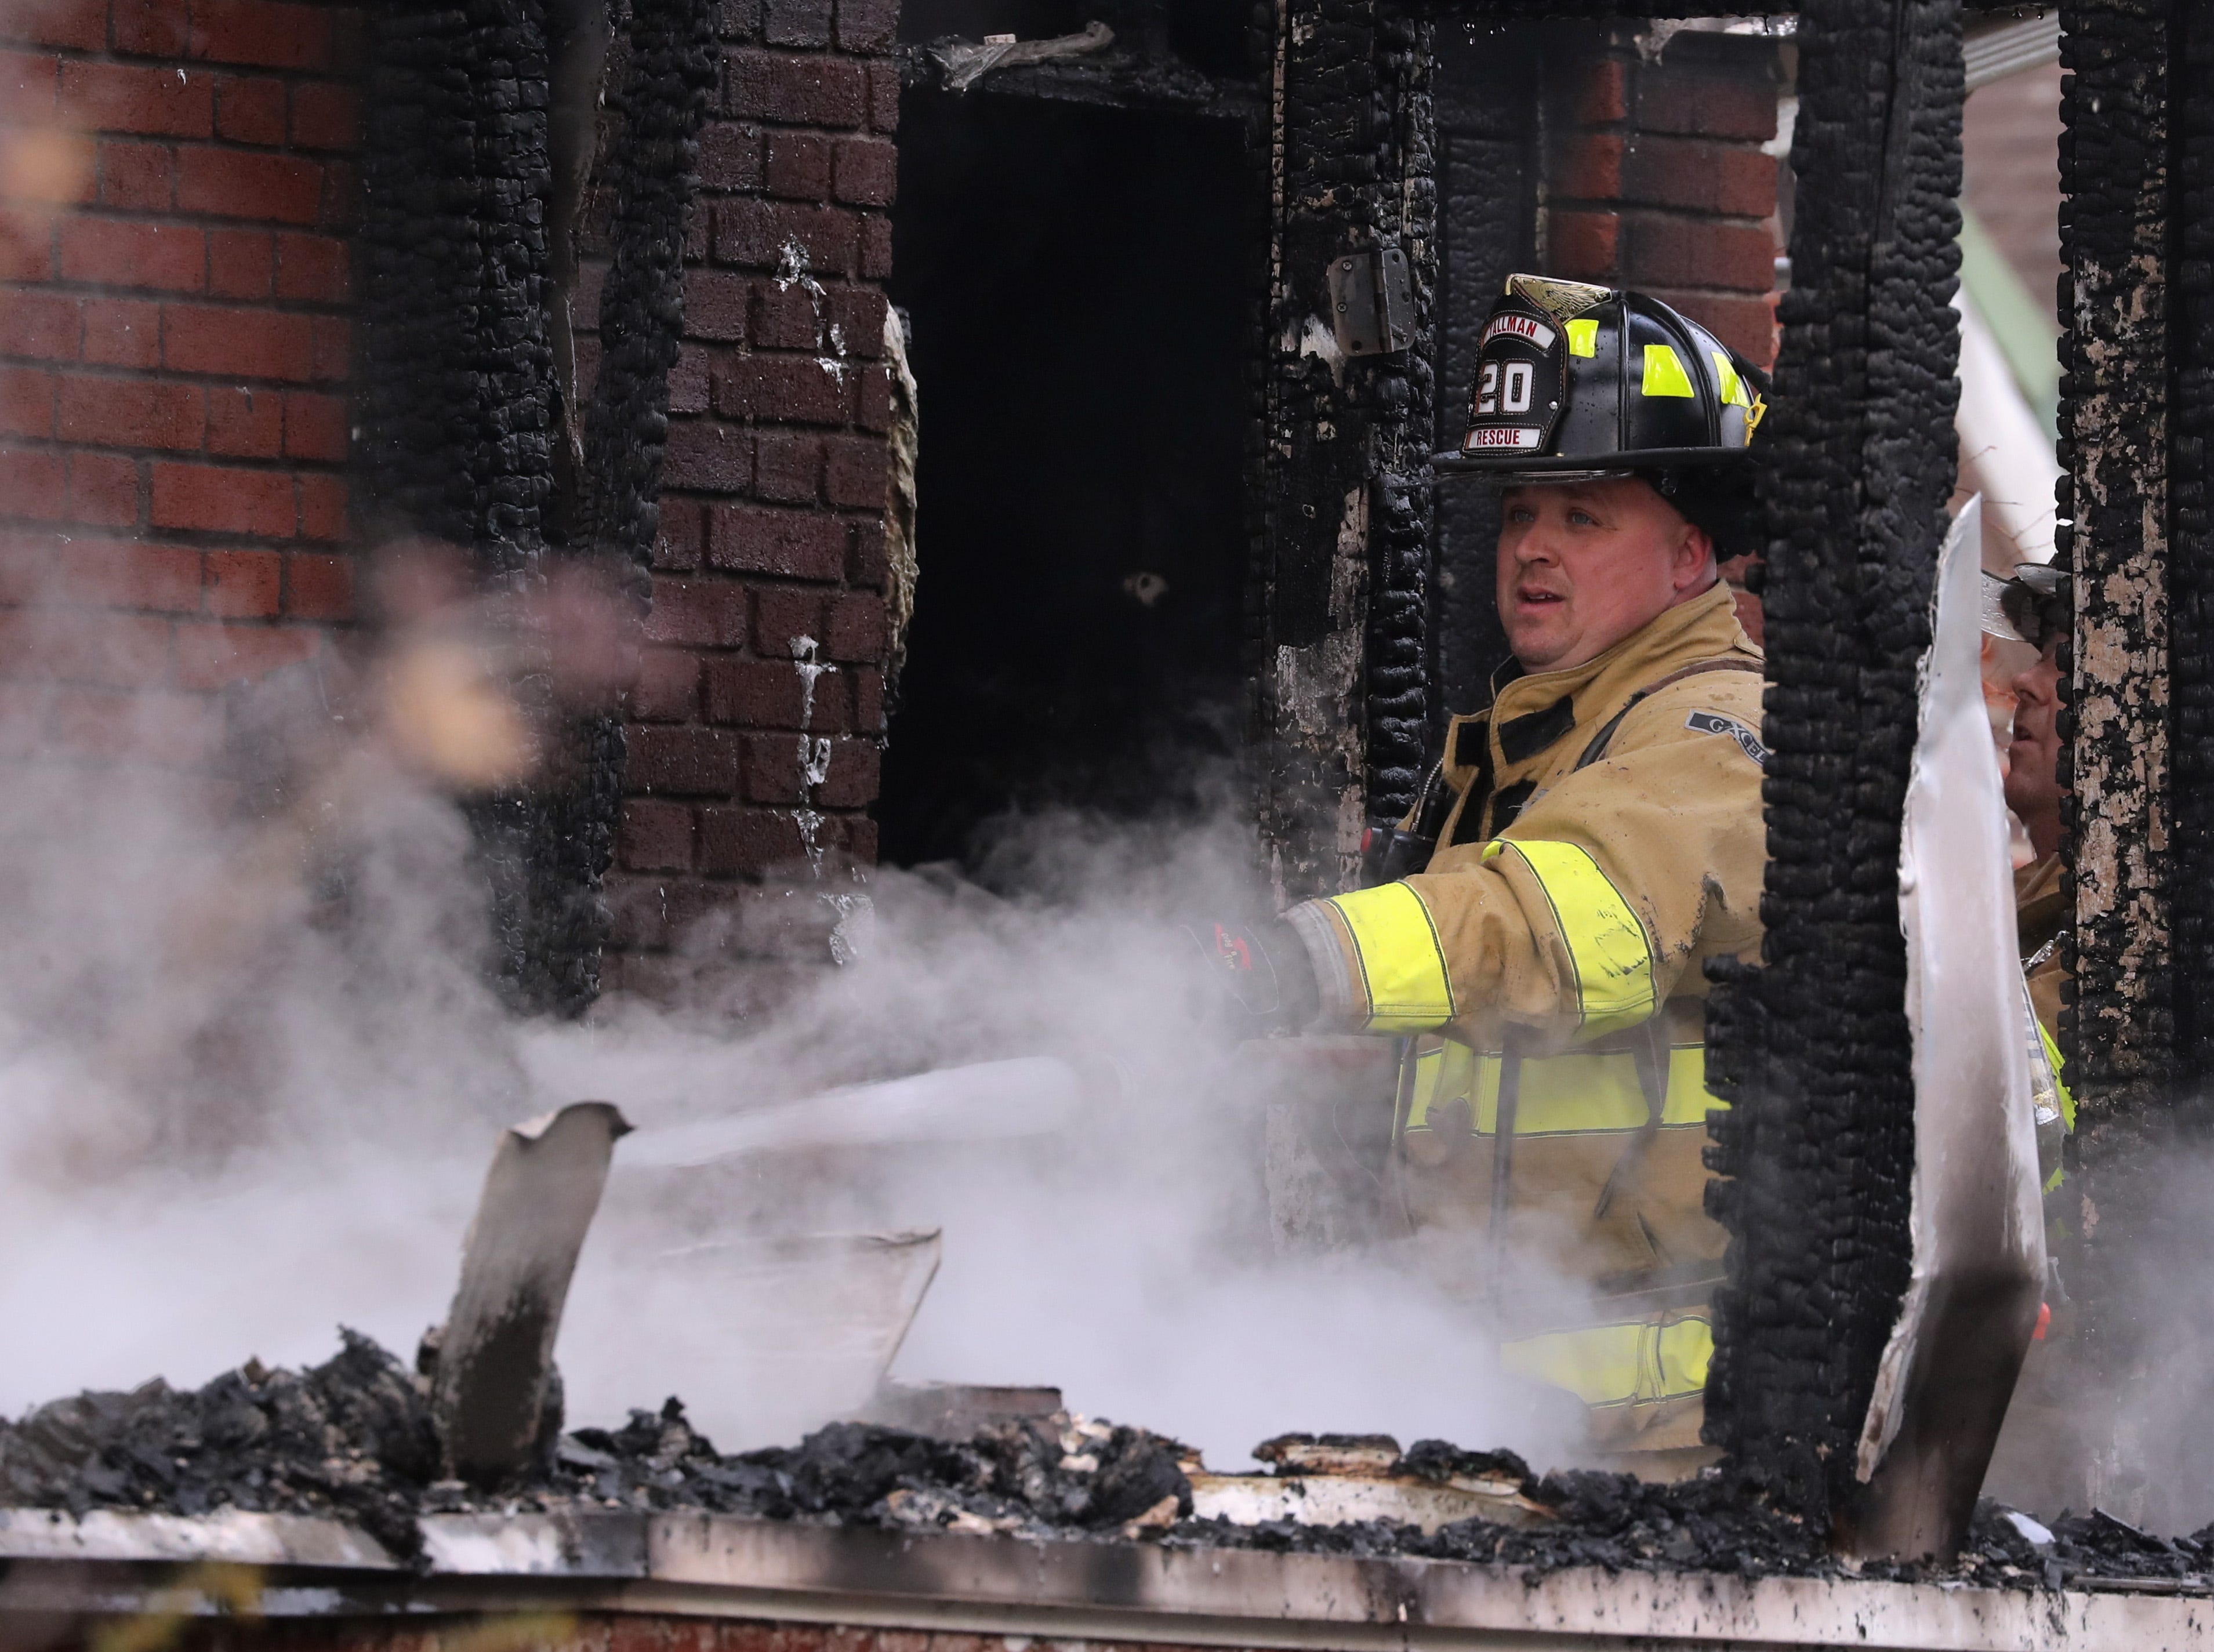 A Tallman Fire Dept. firefighter uses a hose on a house fire on Washington Ave. in Suffern Dec. 5, 2018.